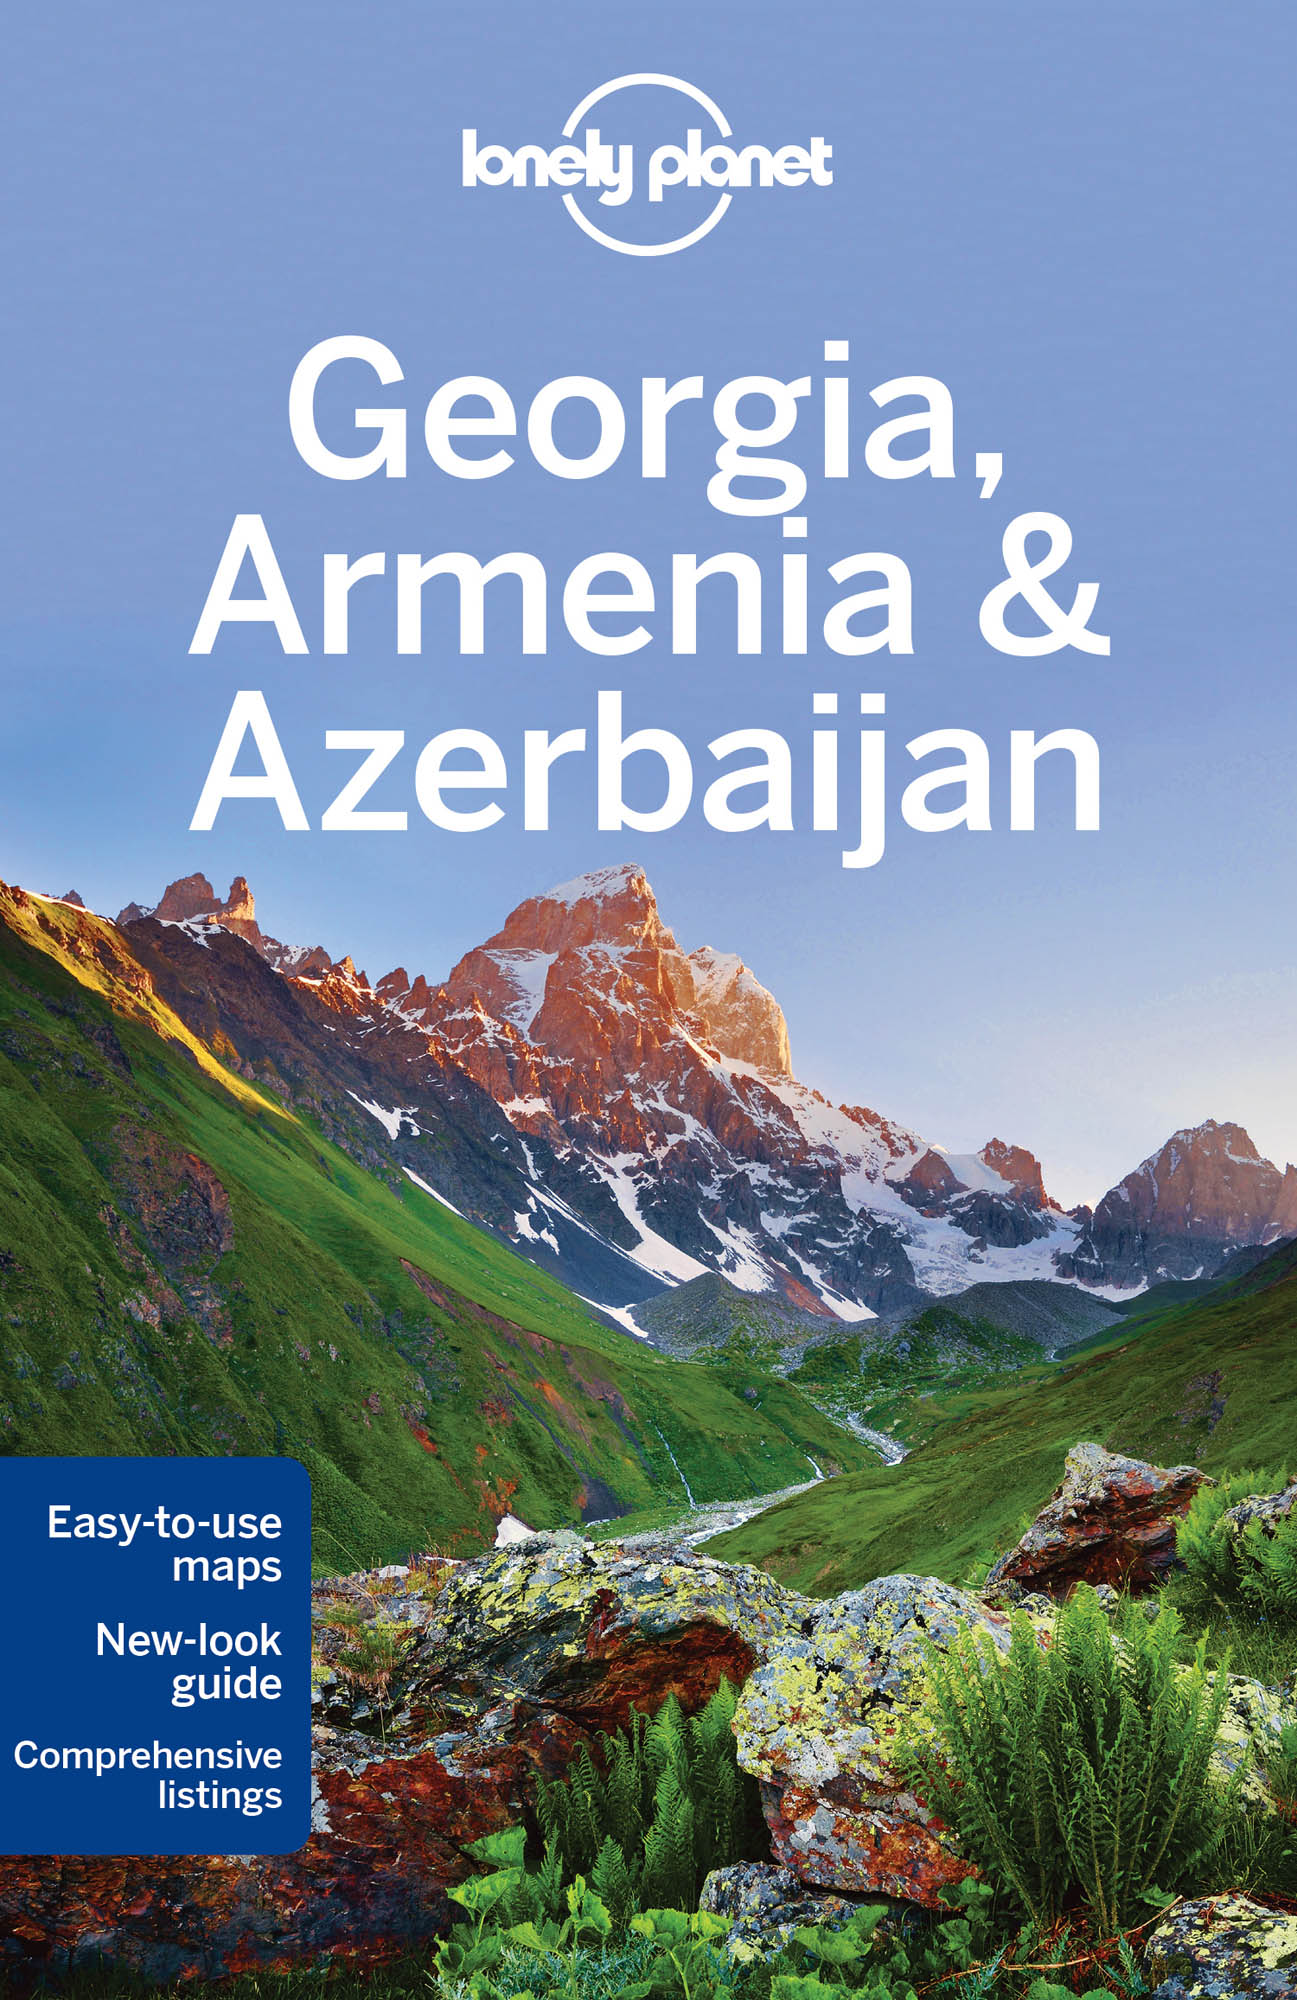 Gruzie, Arménie (Georgia, Armenia & Azerbaijan) průvodce 5th 2016 Lonely Planet